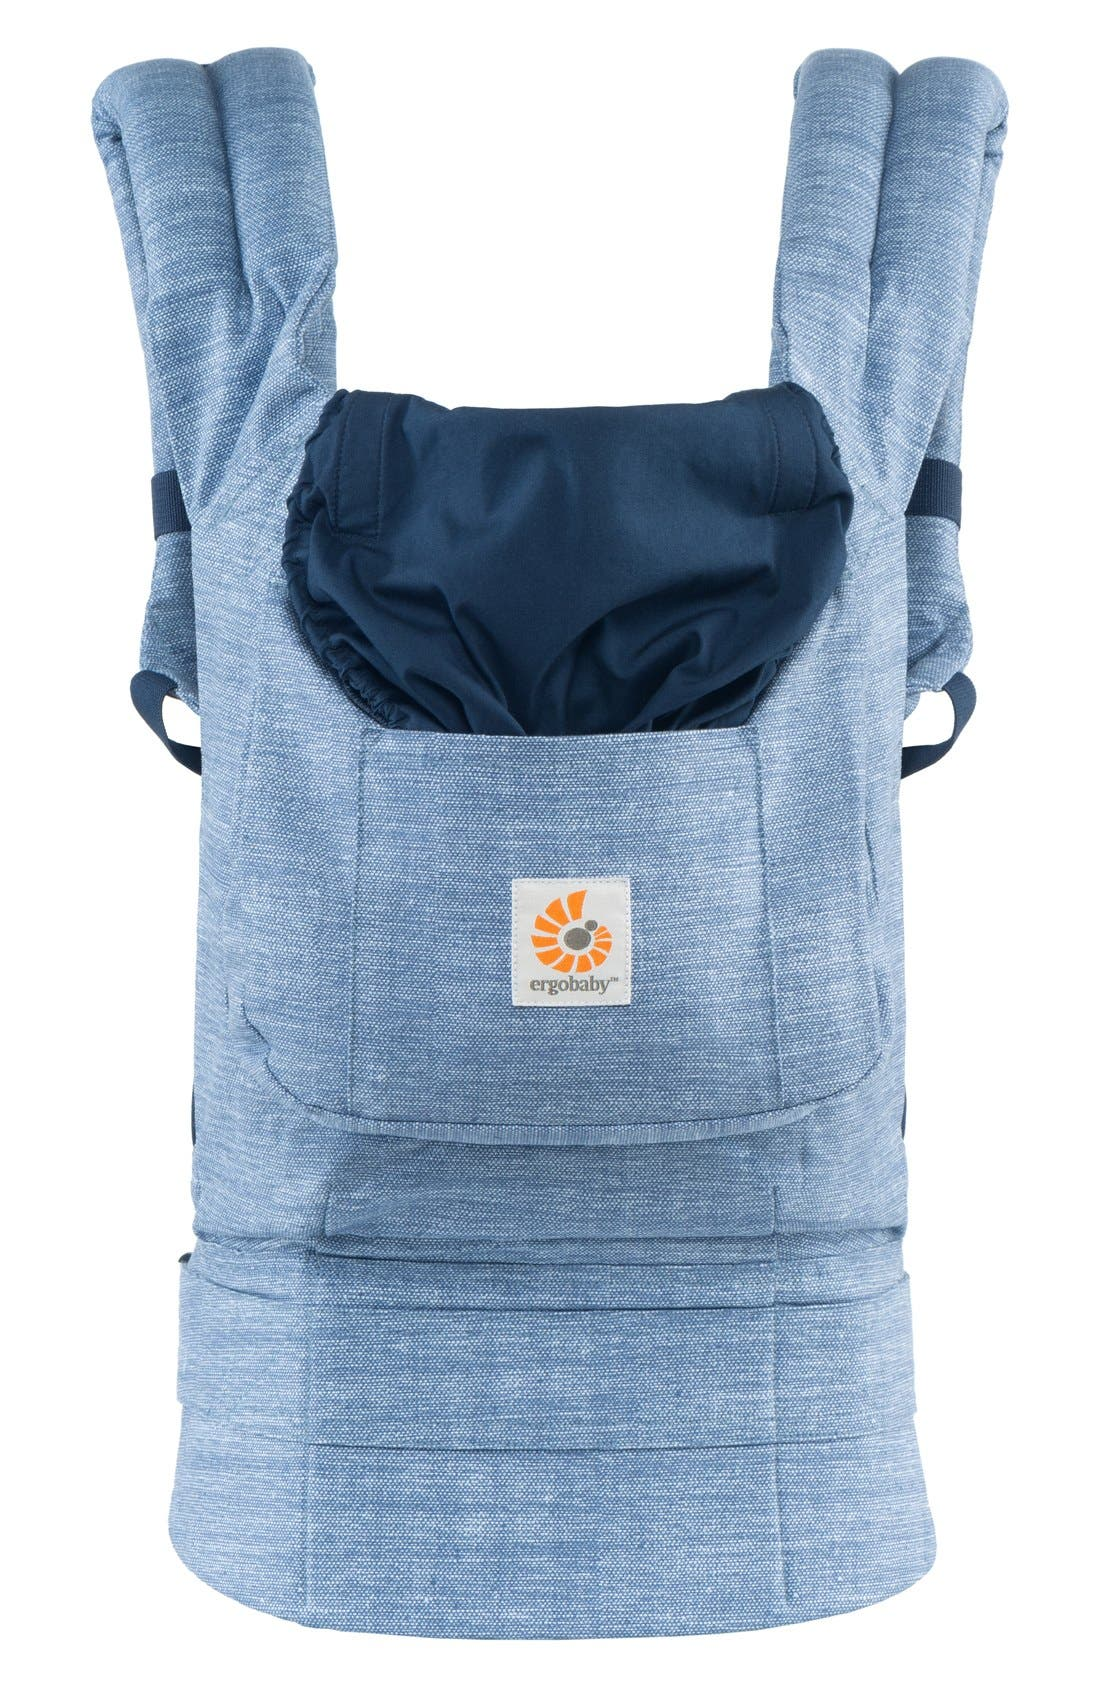 'Original' Cotton Baby Carrier,                             Main thumbnail 1, color,                             Vintage Blue